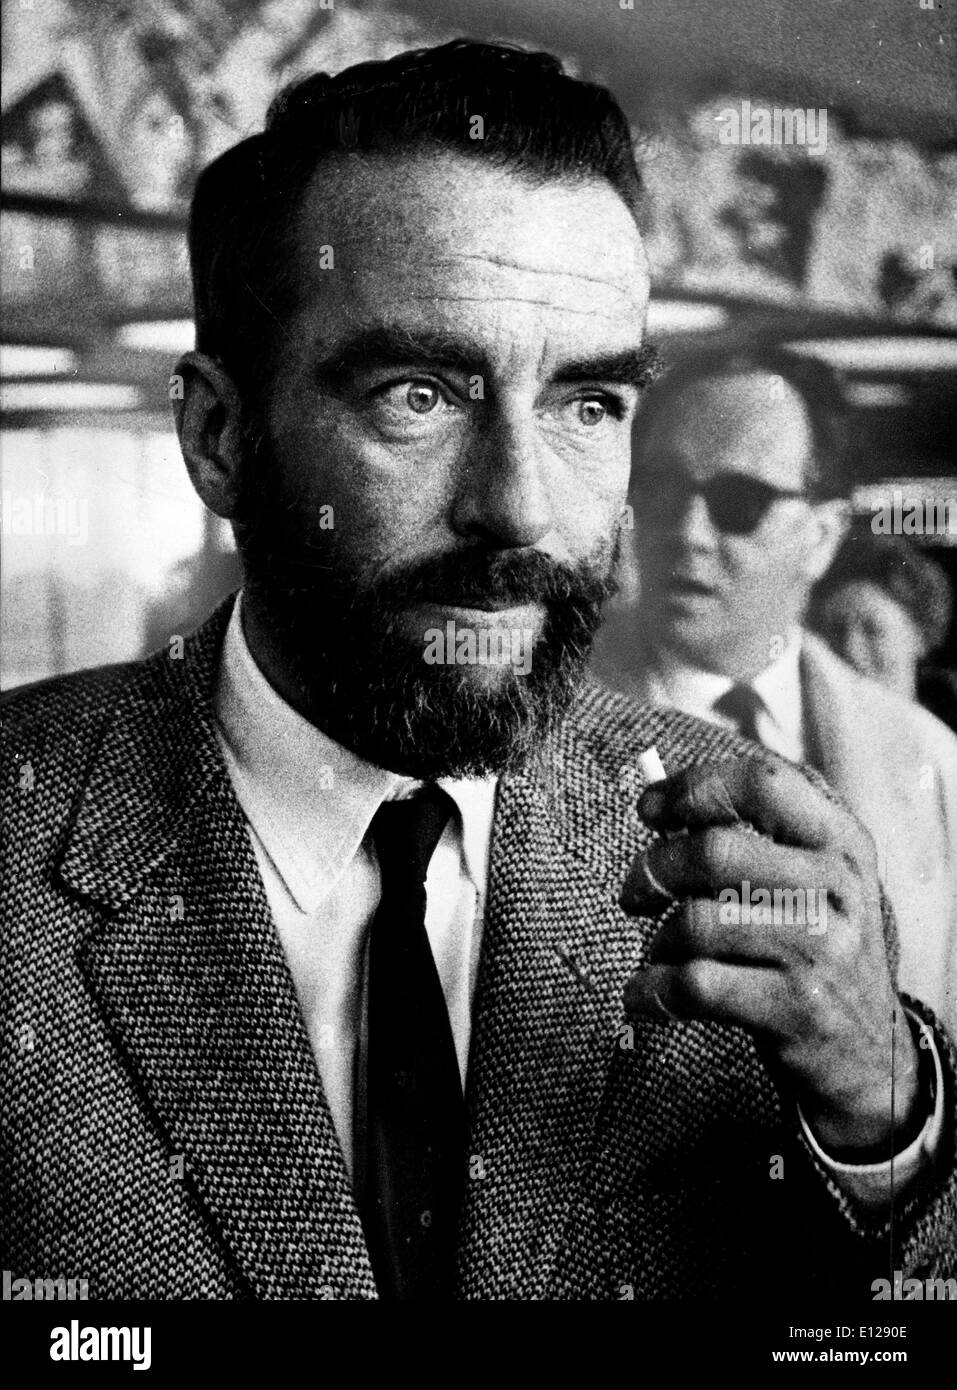 Apr 01, 2009 - London, England, United Kingdom - EDWARD MONTGOMERY CLIFT with beard (October 17, 1920ÐJuly 23, 1966) was an American film actor. He was known for his brooding, sensitive and working-class character roles. He received one Academy Award for best supporting actor and four Academy Award nominations during his career. (Credit Image: KEYSTONE Pictures USA/ZUMAPRESS.com) - Stock Image